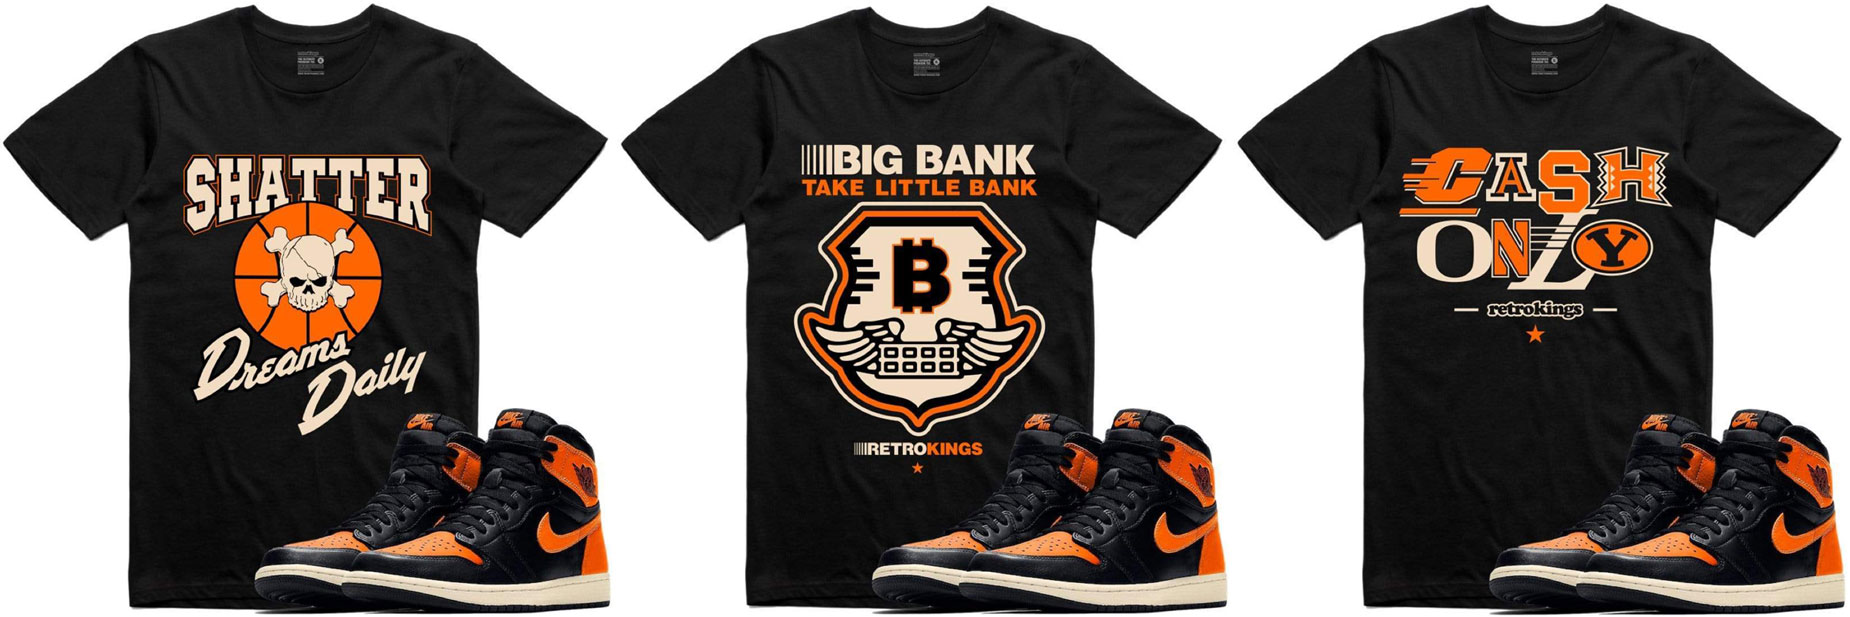 jordan-1-shattered-backboard-3-sneaker-tee-shirts